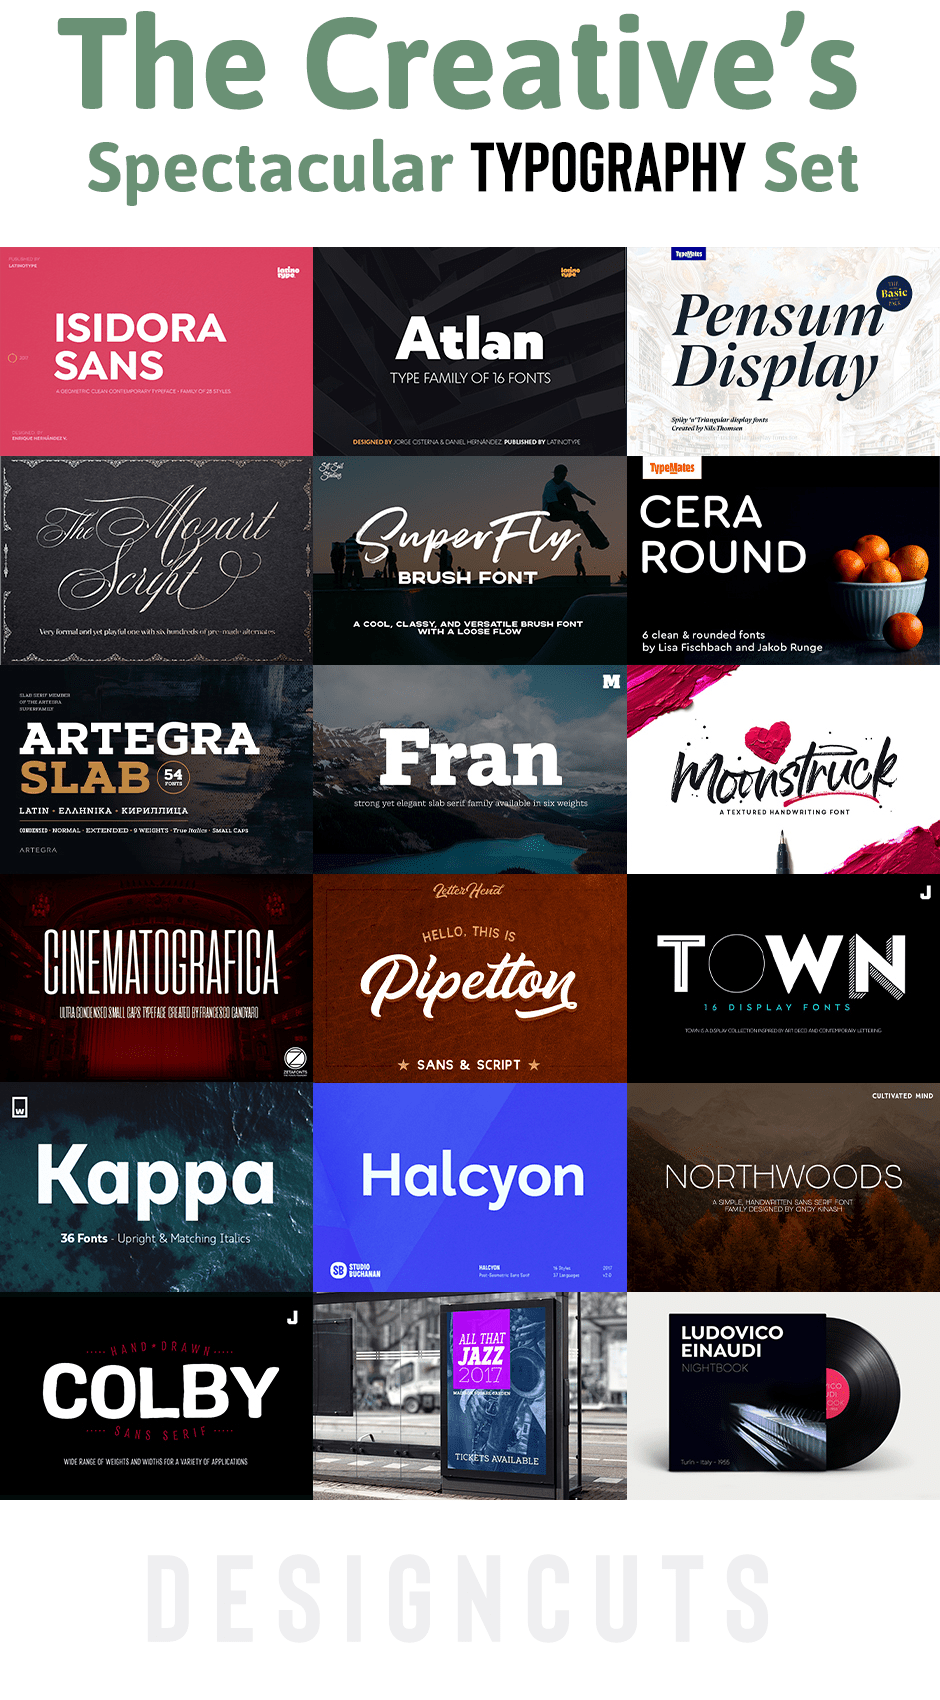 The Creative's Spectacular Typography Set - Design Cuts